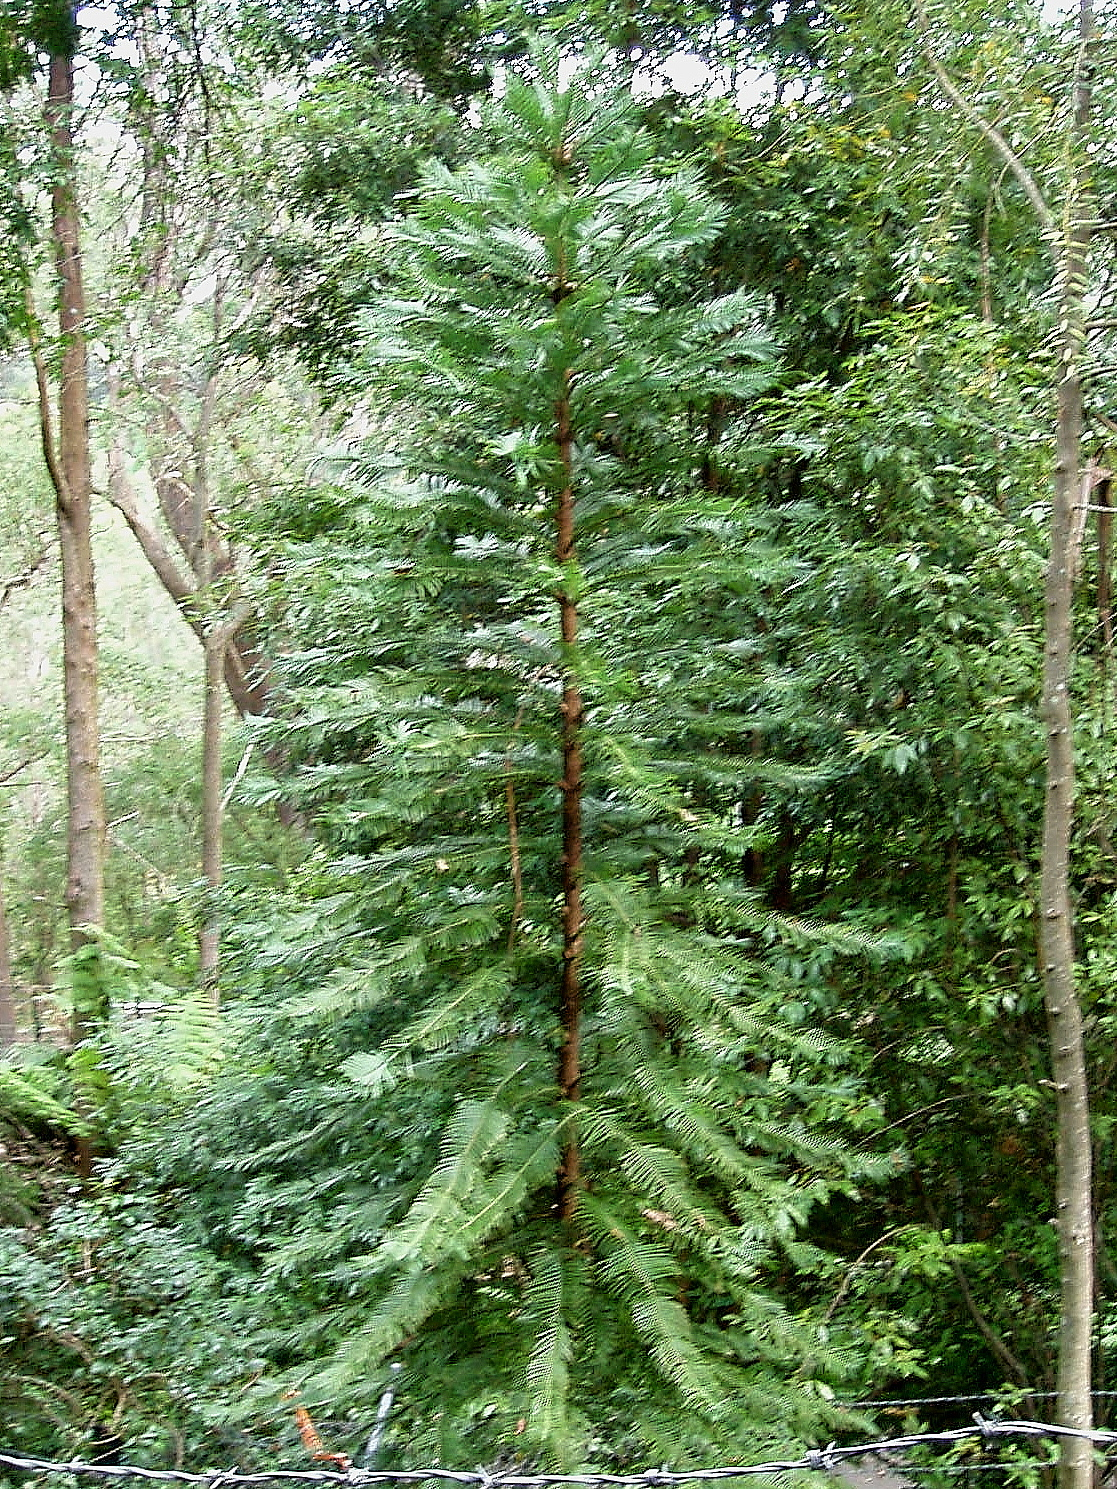 List Types of Pine Trees http://commons.wikimedia.org/wiki/File:Wollemi_Pine.jpg